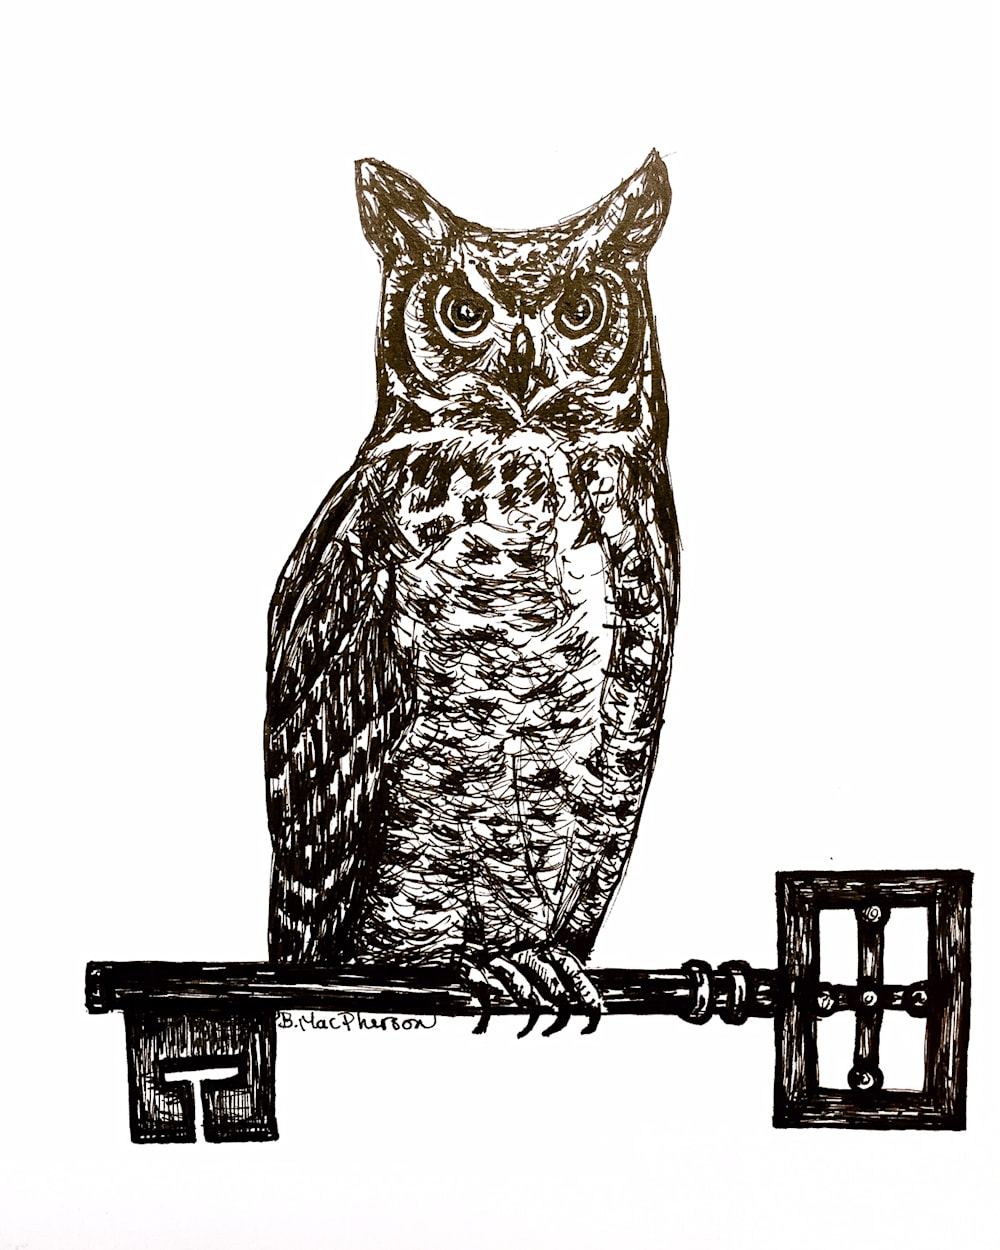 Great Horned Owl with Antique Key Illustration by Becky MacPherson